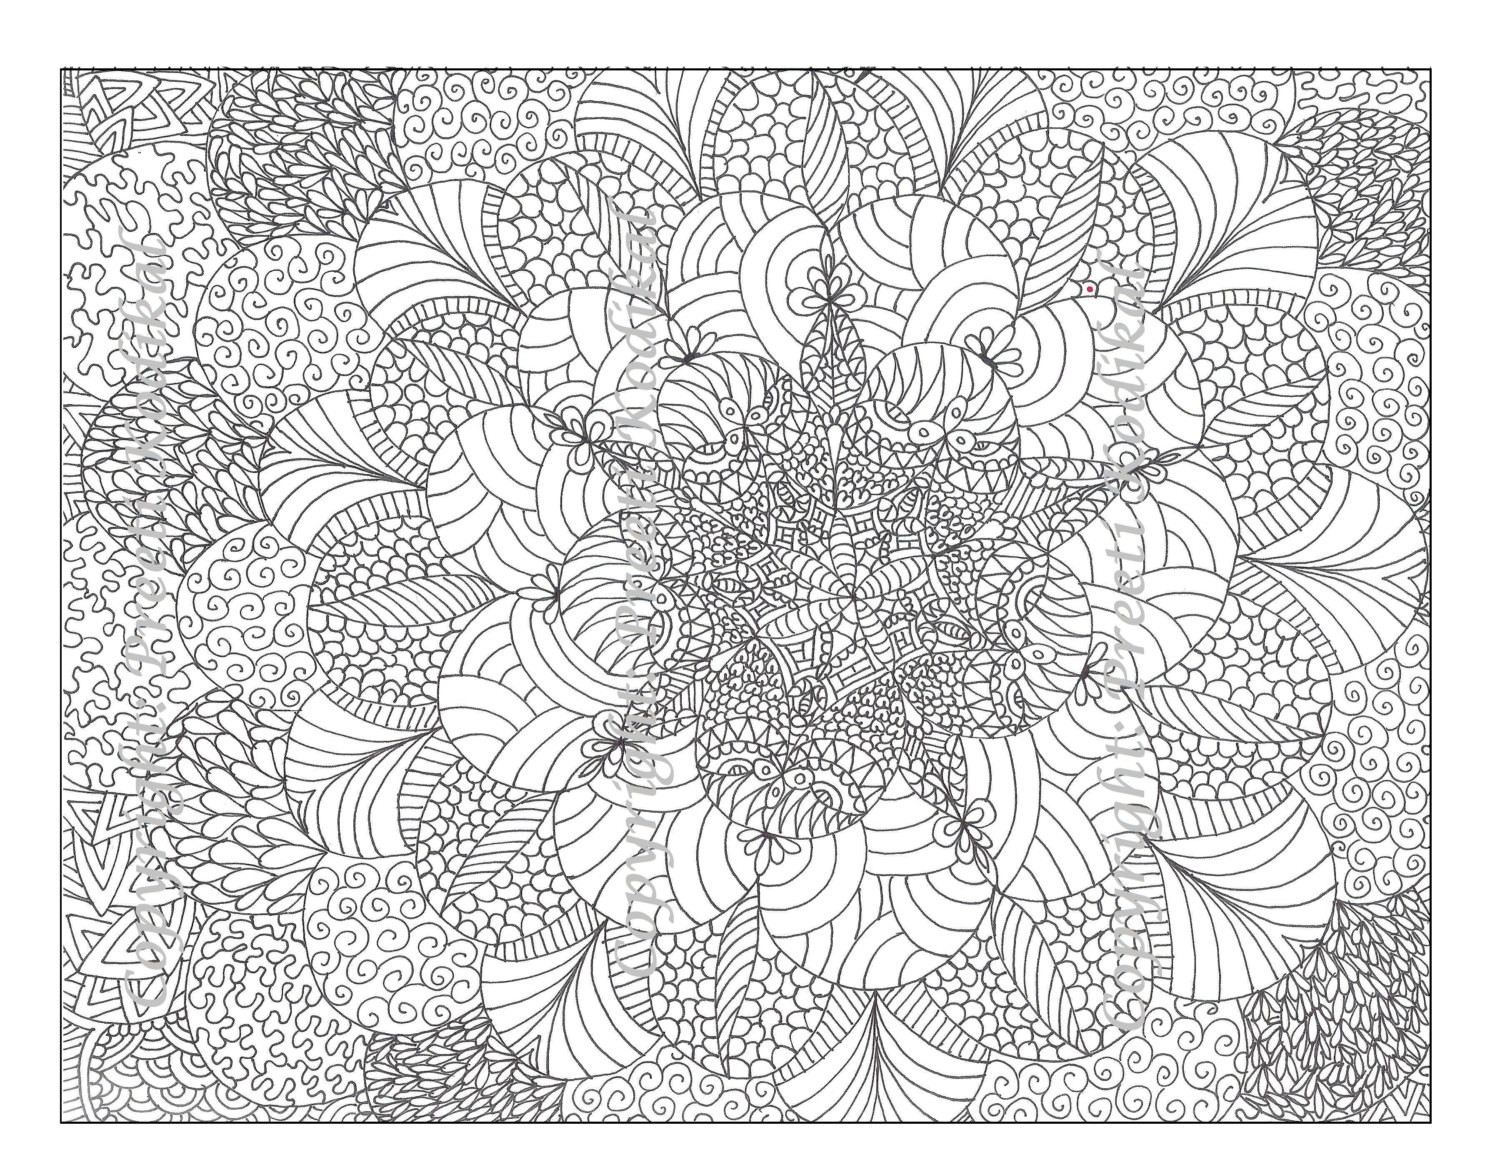 Best ideas about Printable Coloring Pages For Adults Free . Save or Pin Free Printable Abstract Coloring Pages for Adults Now.